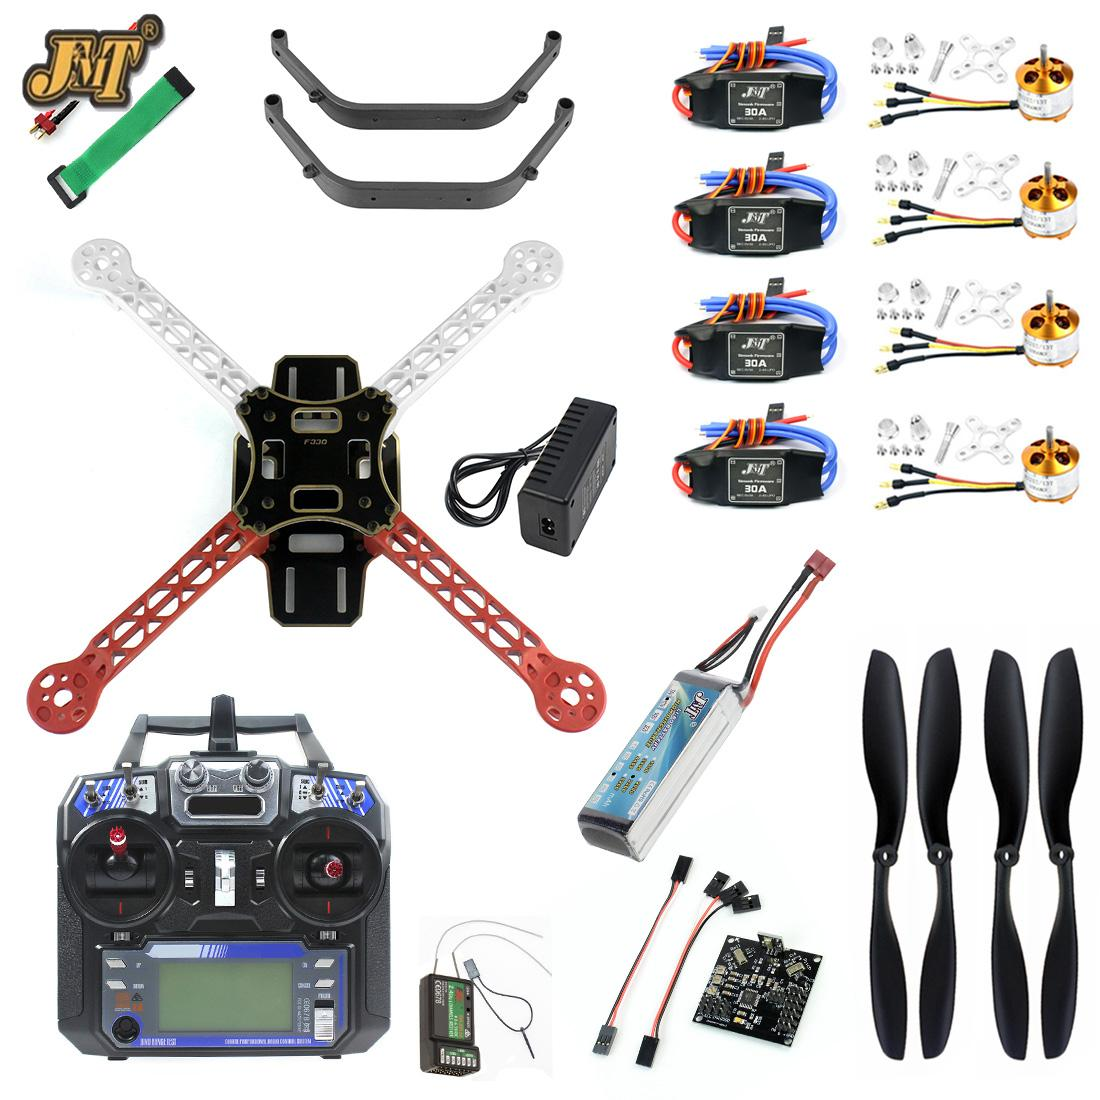 JMT Full Set DIY RC Drone Quadrocopter Kit 4-axle F330 MultiCopter Frame KK XCOPTER V2.9 Flight Control Flysky FS-i6 Transmiter